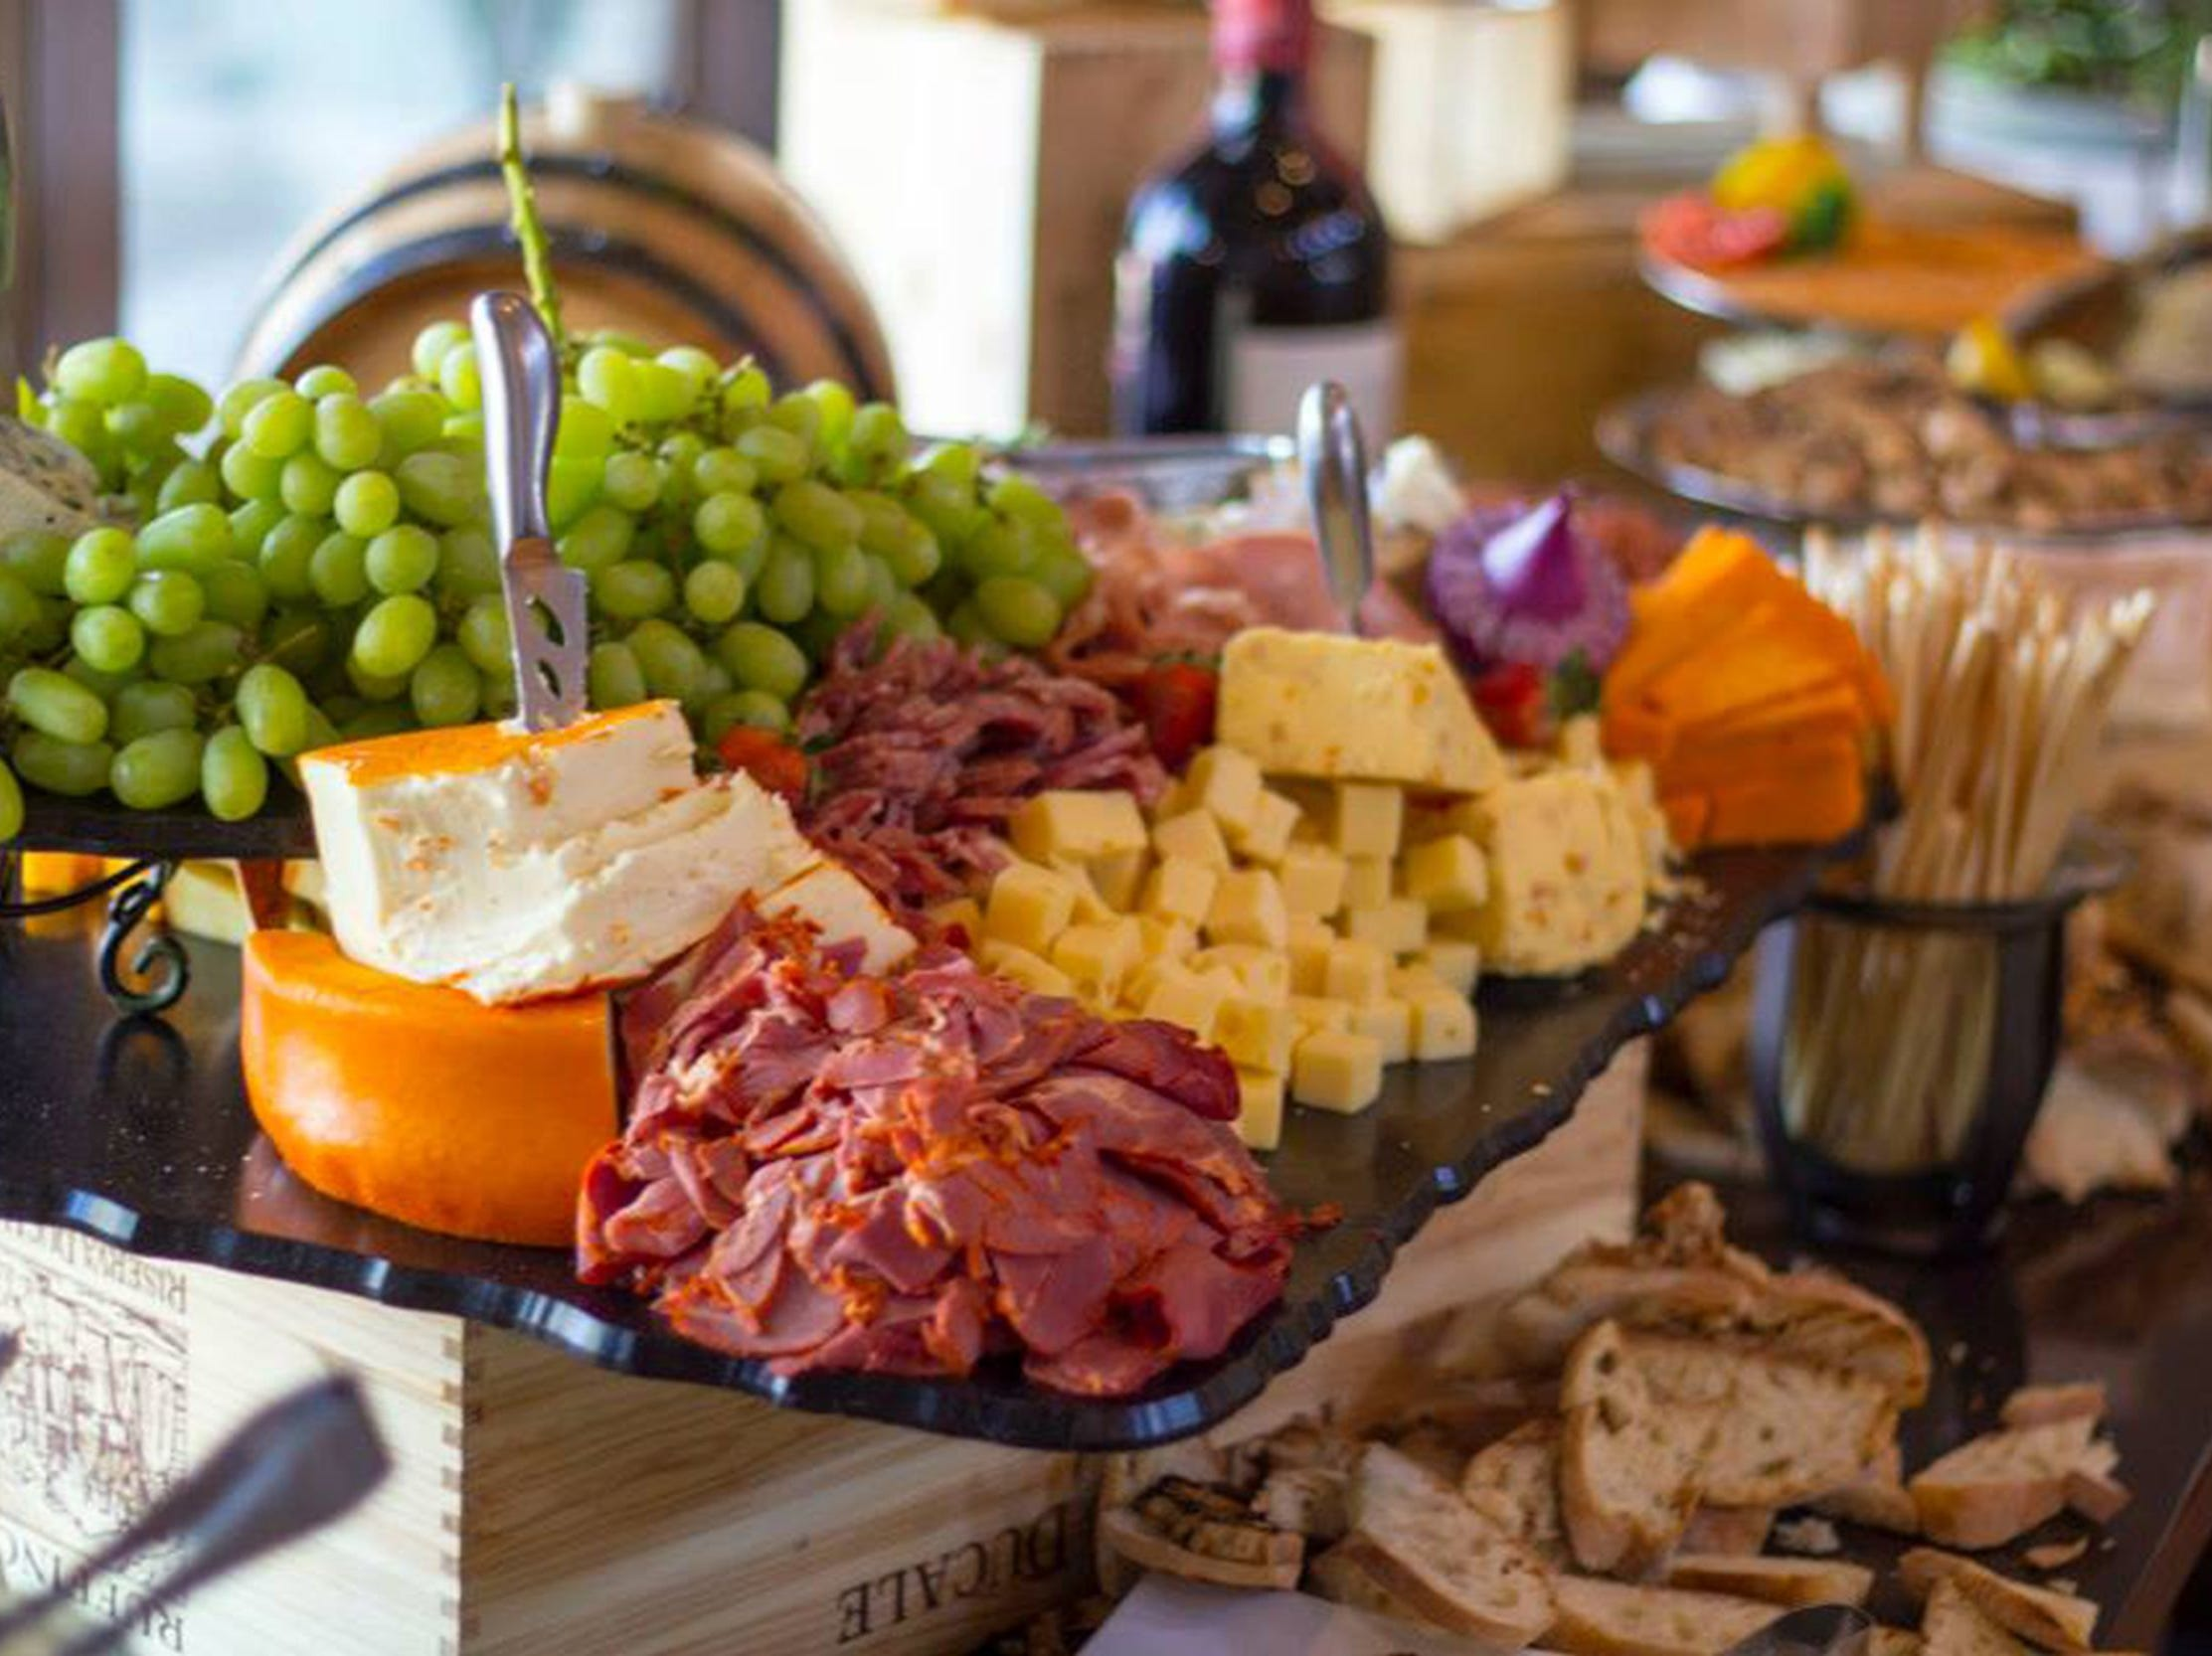 BISTRO 1528, ENCANTERRA, A TRILOGY RESORT COMMUNITY | A brunch buffet ($60 for members, $80 for non-members, $15 for ages 12 and younger) will be served 10 a.m.-3 p.m. and feature fruit, pastries, seafood, sides, prime rib, an omelet station, achiote rubbed pork loin and more. There will be a kids buffet. DETAILS: 36460 N. Encanterra Drive, San Tan Valley. 480-677-8060, bistro1528.com.